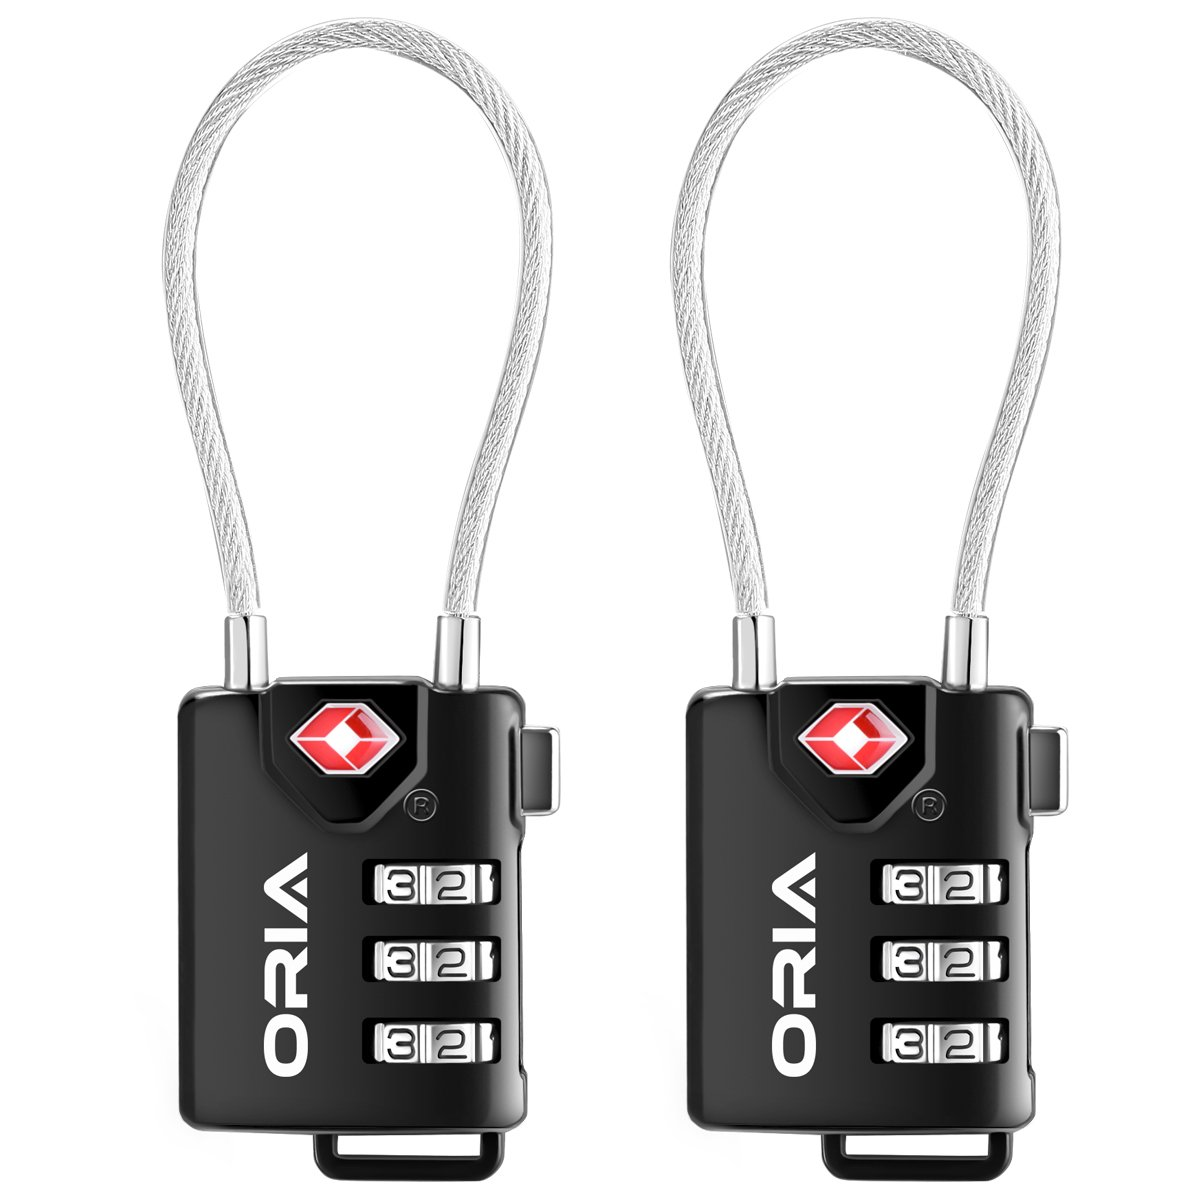 ORIA 5-Digit Combination Padlock, Combination Resettable Locks, Security Lock, Number Lock, Zinc Alloy Material, Weather Proof Design, Padlock for Gym, Bicycle, Toolbox, Cabinet etc. [1 Pack]